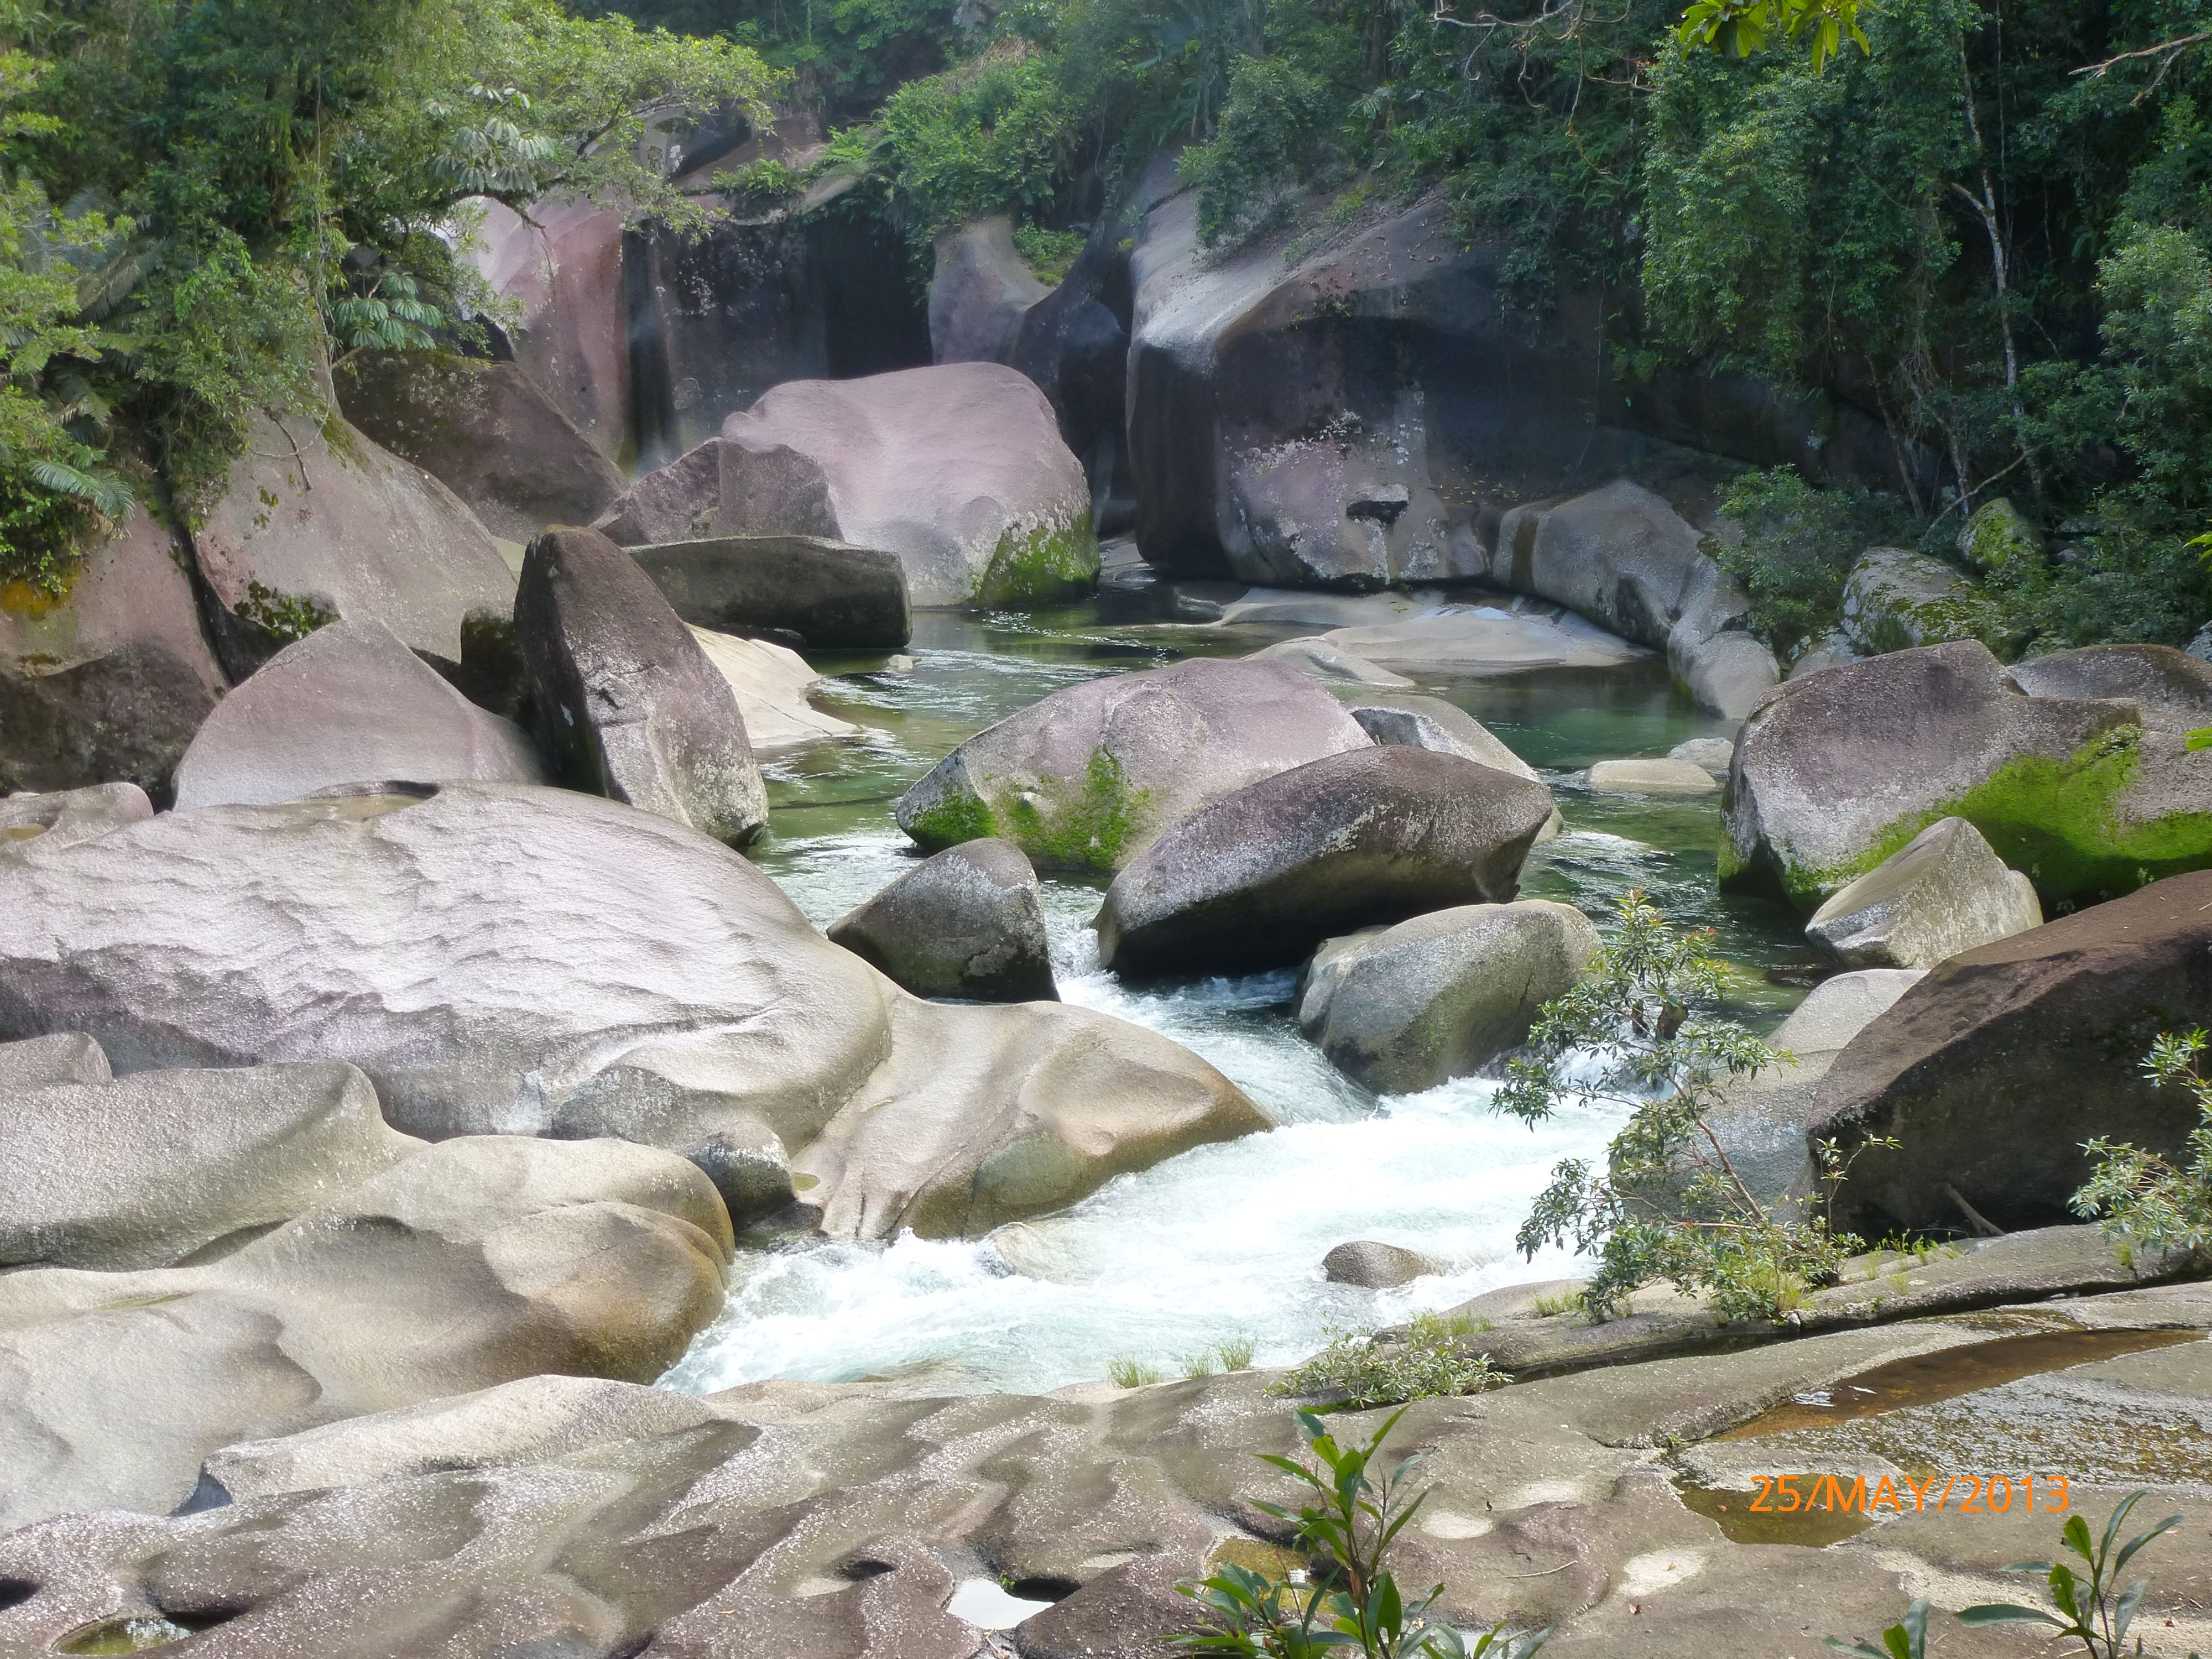 Series of Rock Pools along a river in the Daintree Rainforest